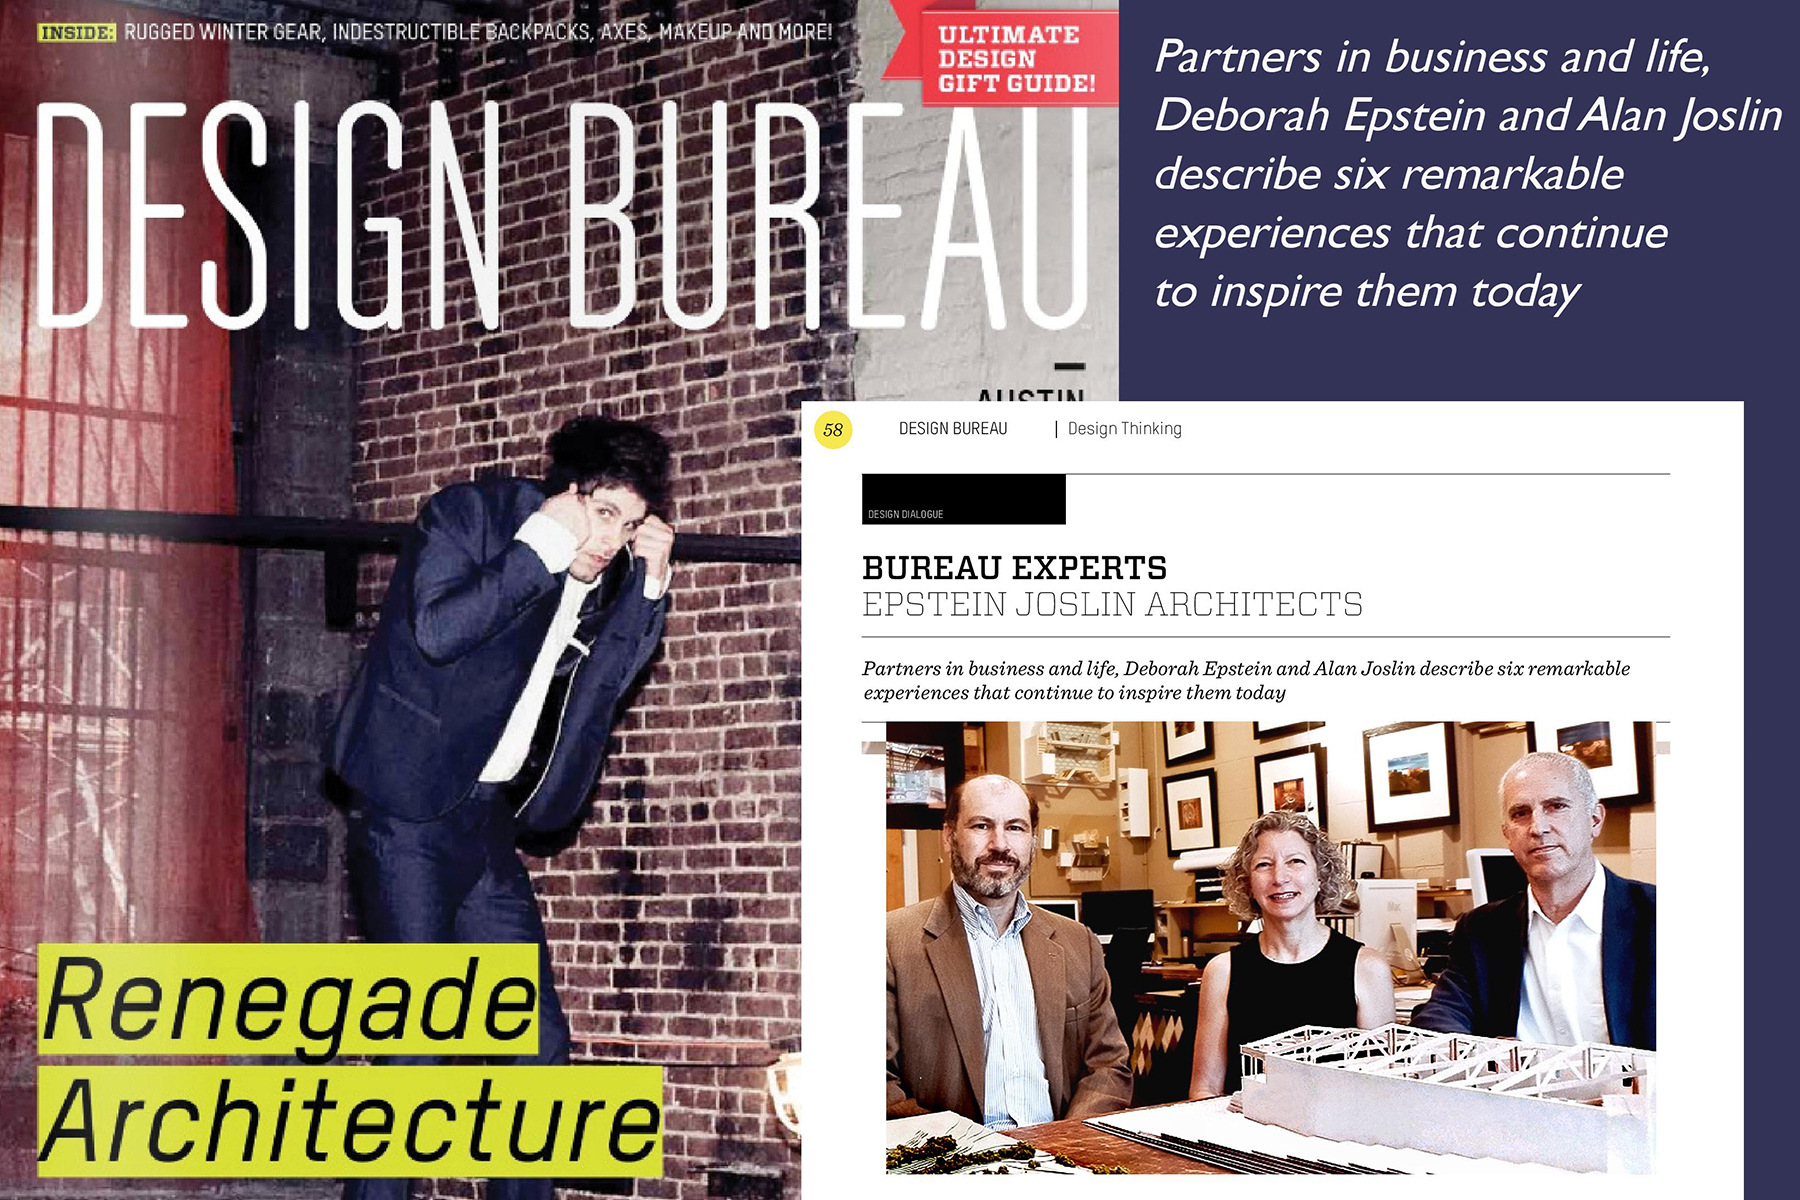 BUREAU EXPERTS: EPSTEIN JOSLIN ARCHITECTS  Design Bureau